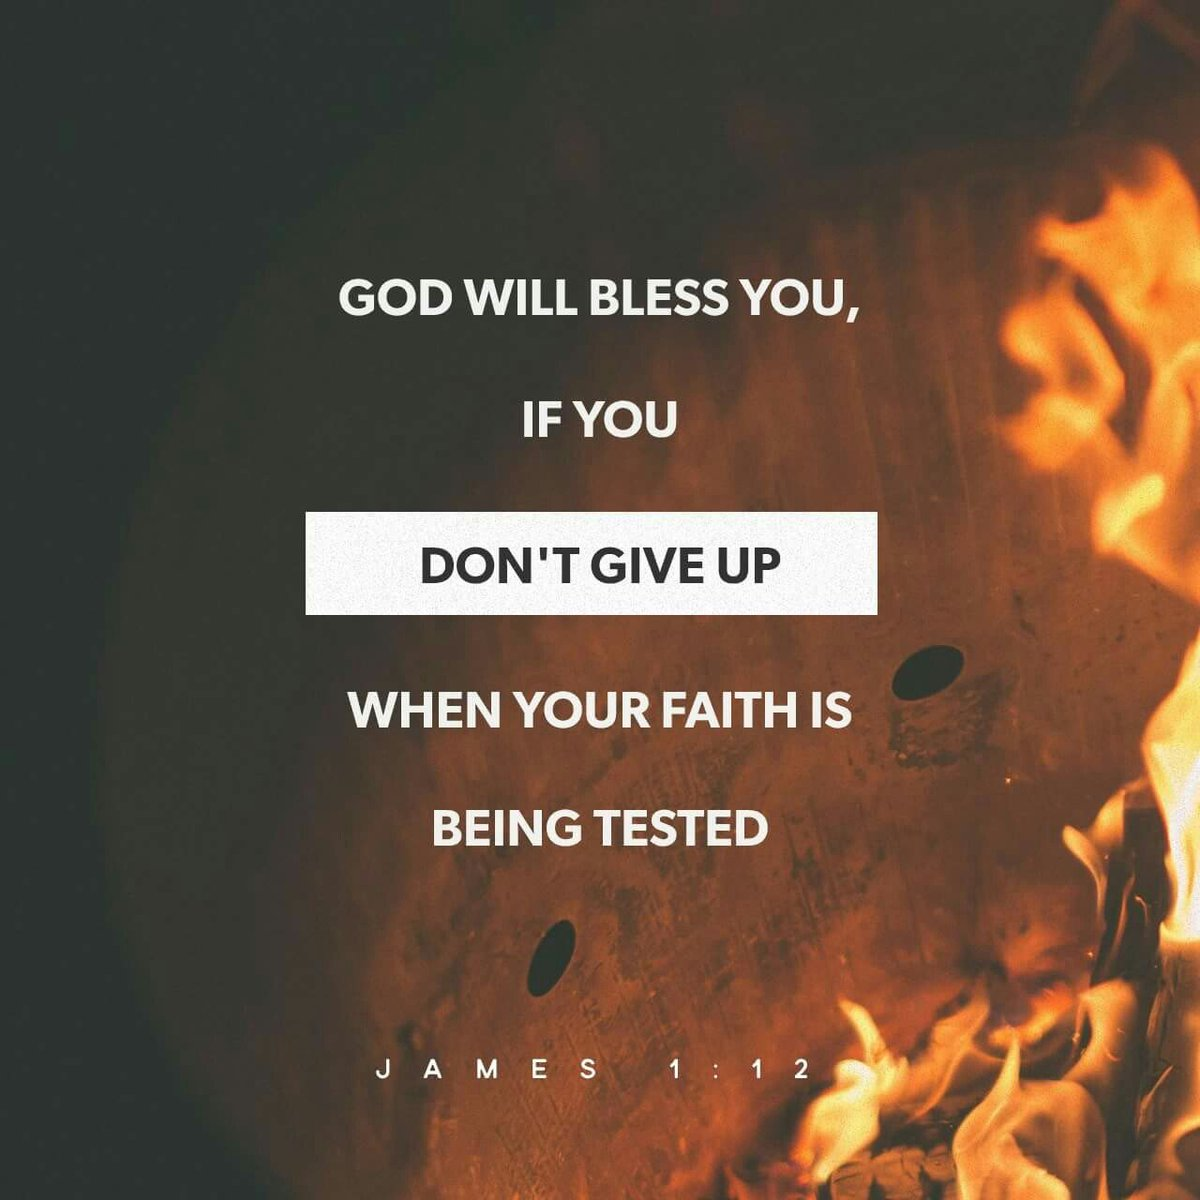 """God will bless you, if you don't give up when your faith is being tested."" James 1:12 #VerseOfTheDay https://t.co/cu48wRJSEm"